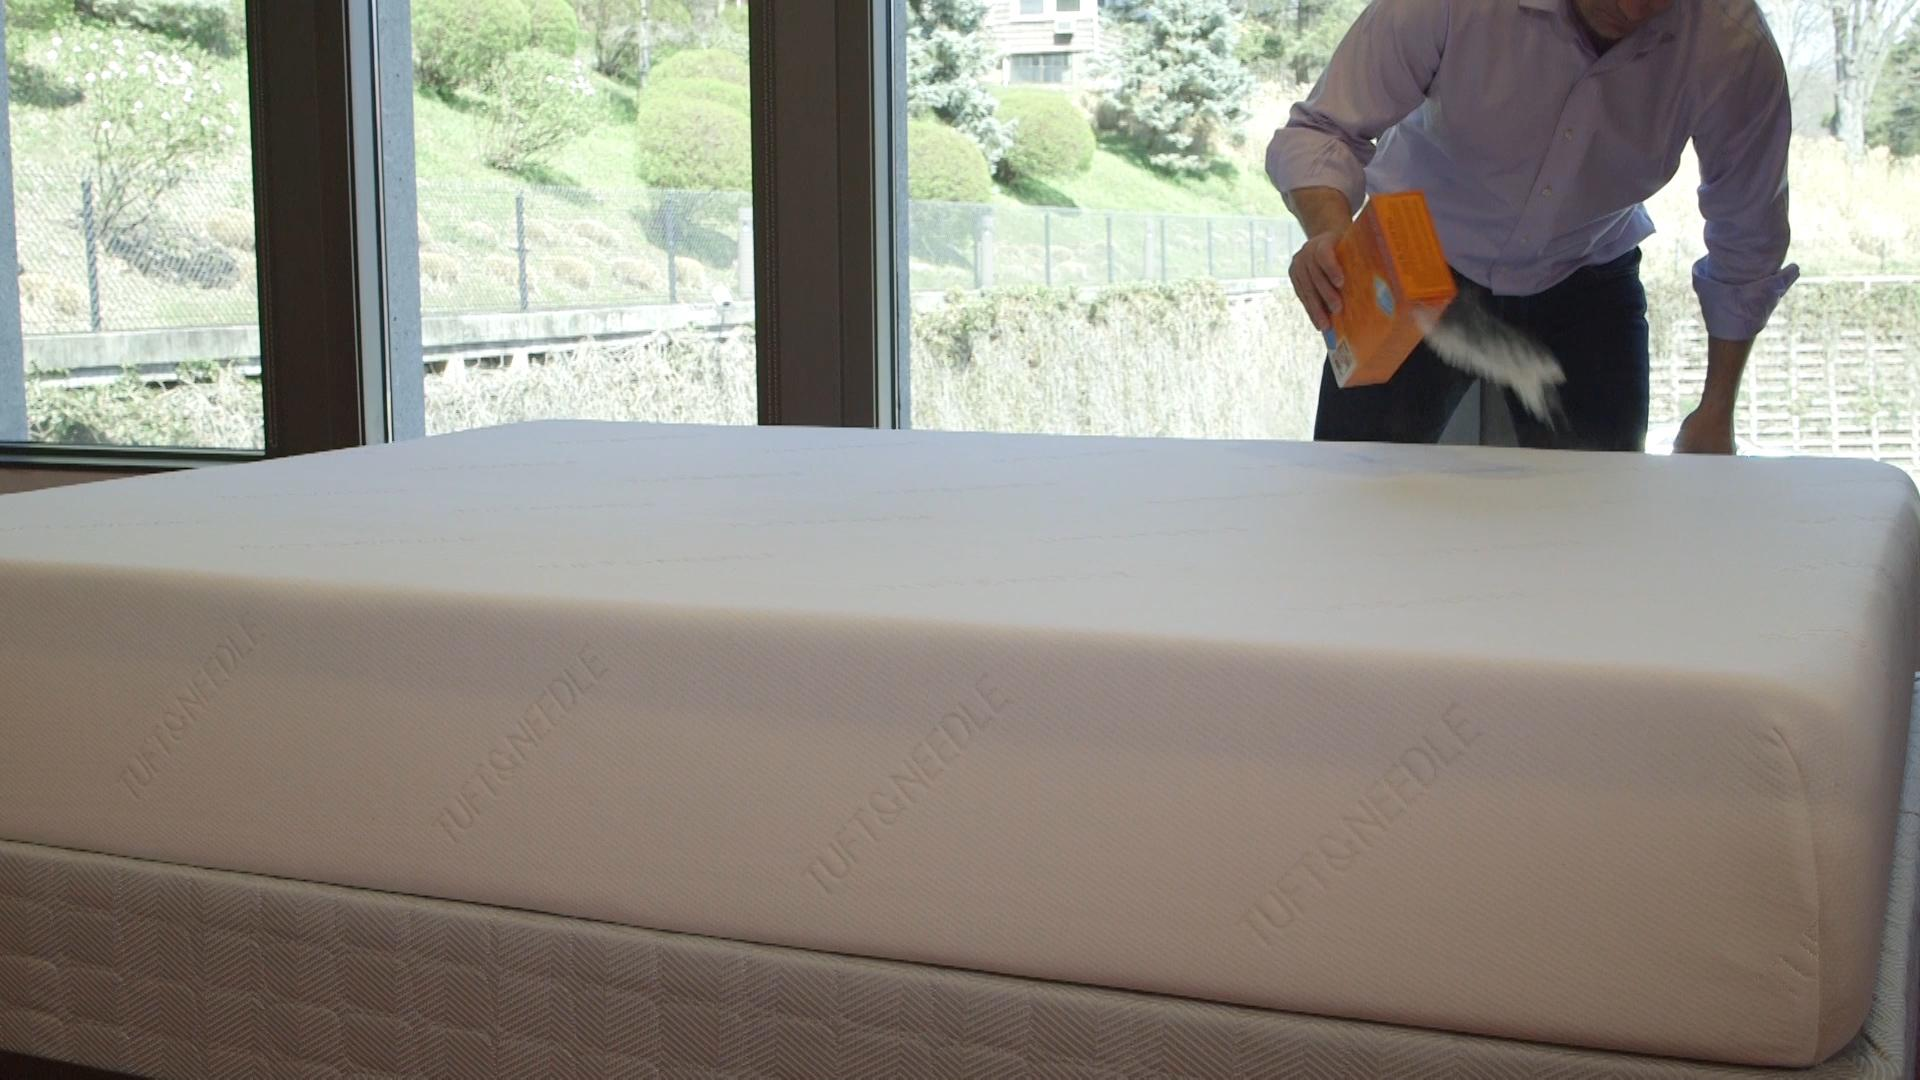 Sofa In A Box Companies How To Clean A Mattress And Why Consumer Reports